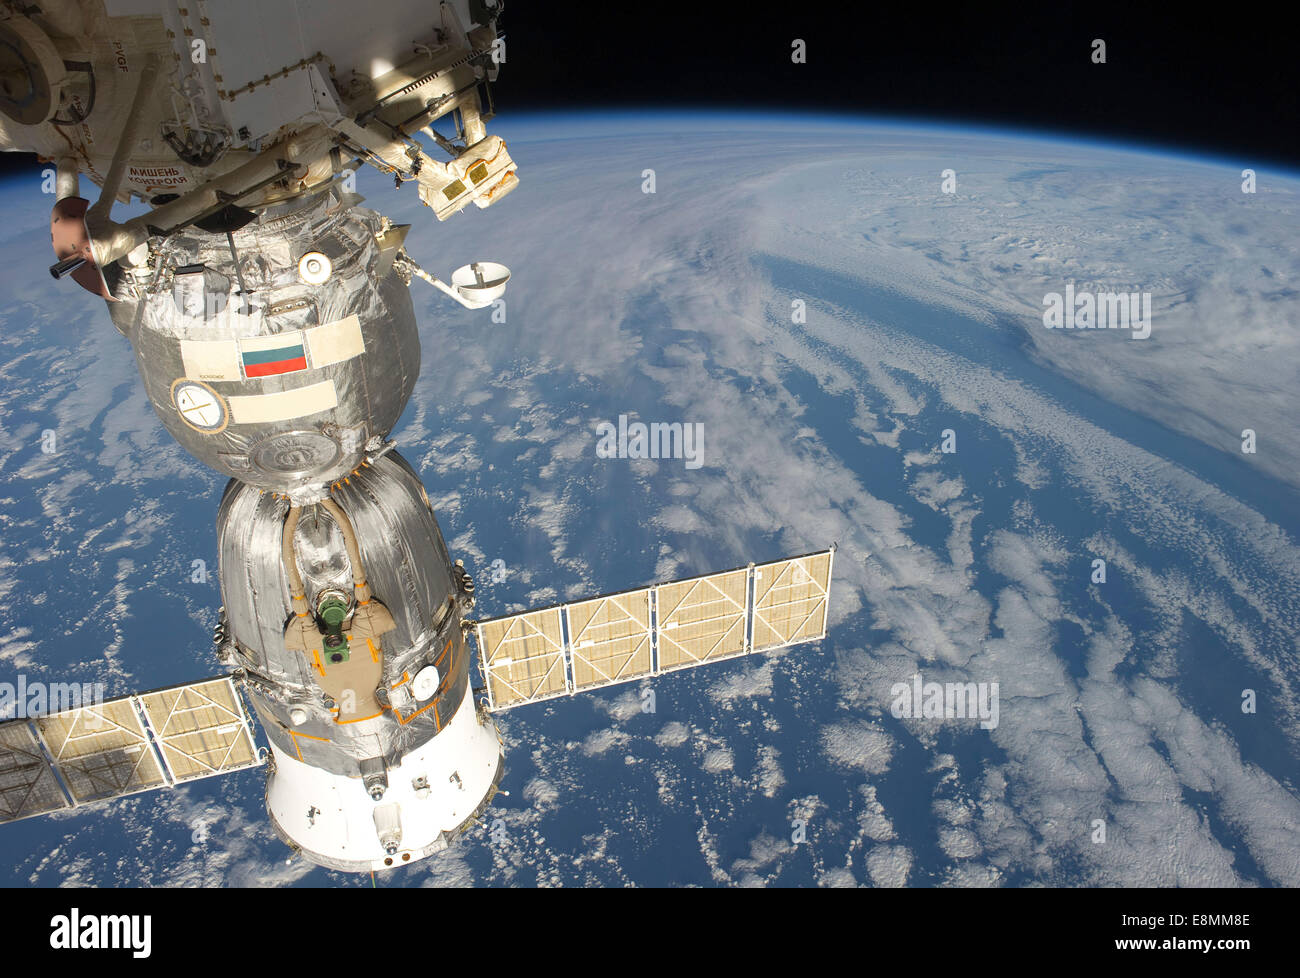 April 22, 2011 - A docked Russian Soyuz spacecraft backdropped by a blue and white part of Earth. - Stock Image